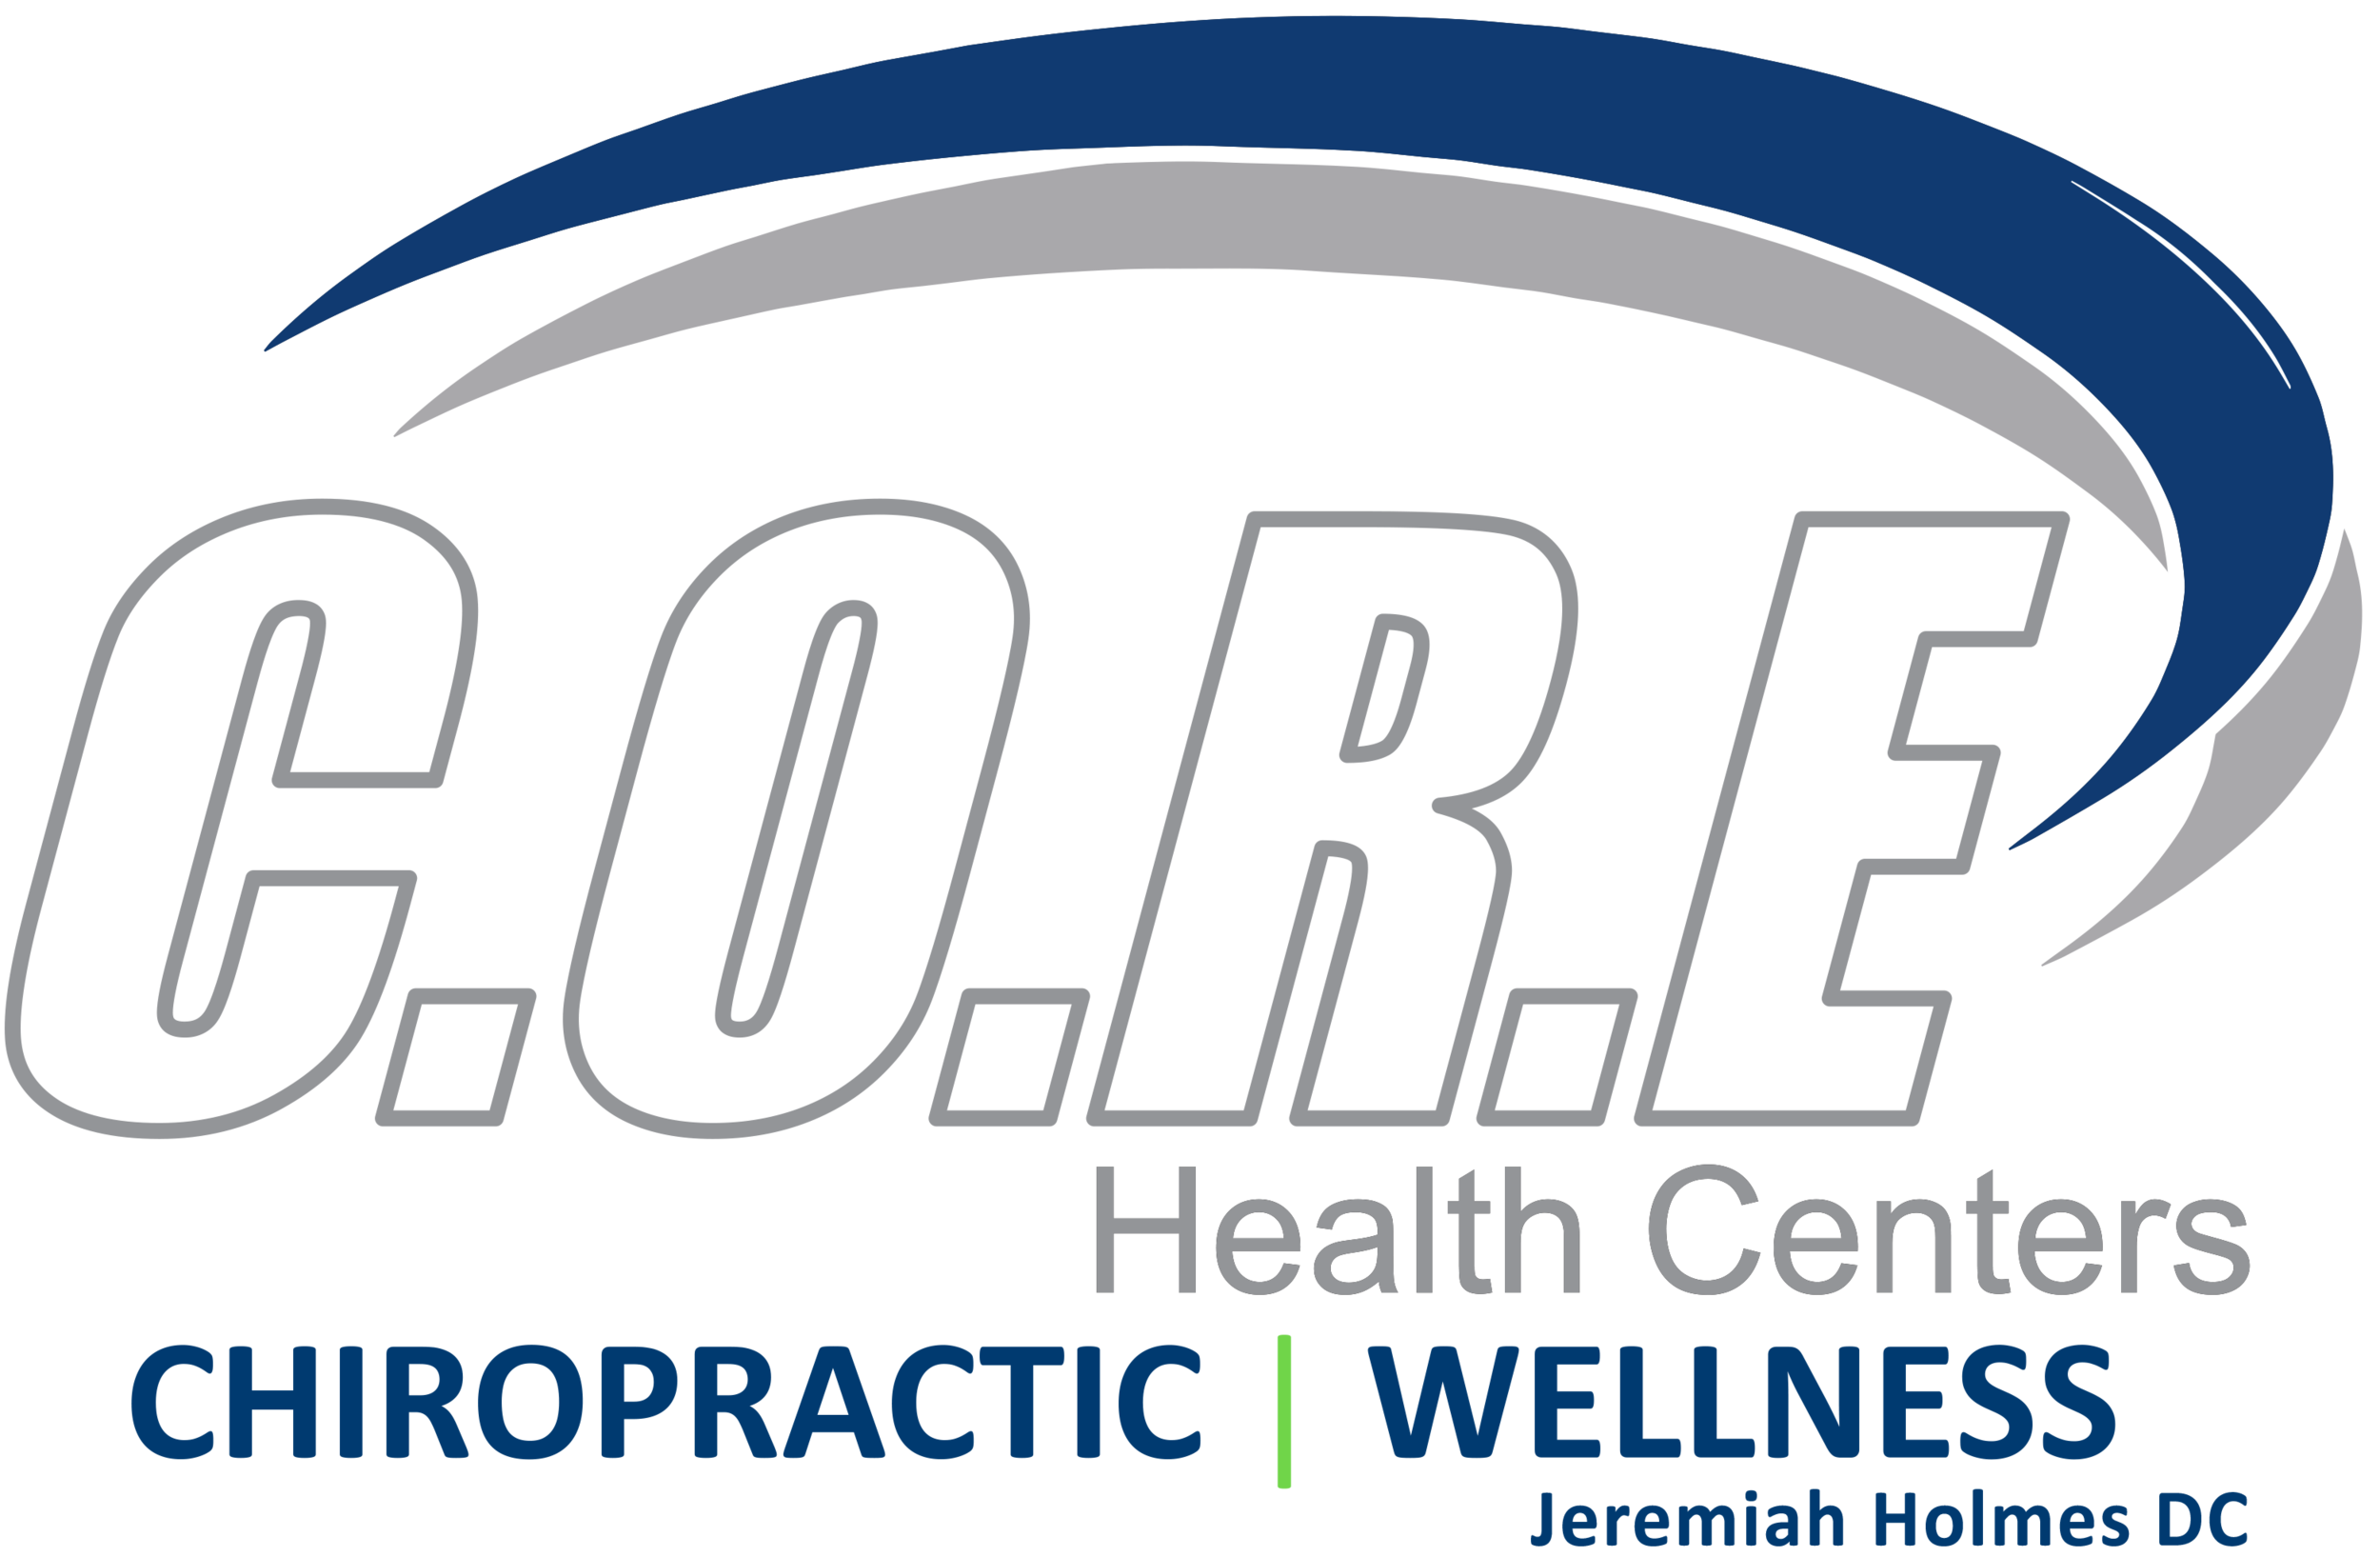 1:30-4pmfree chair massages just for you! - CORE Health Centers will be providing a massage therapist onsite at Musicians' Wellness Day all afternoon to ease those end-of-season and end-of-the-semester muscles!